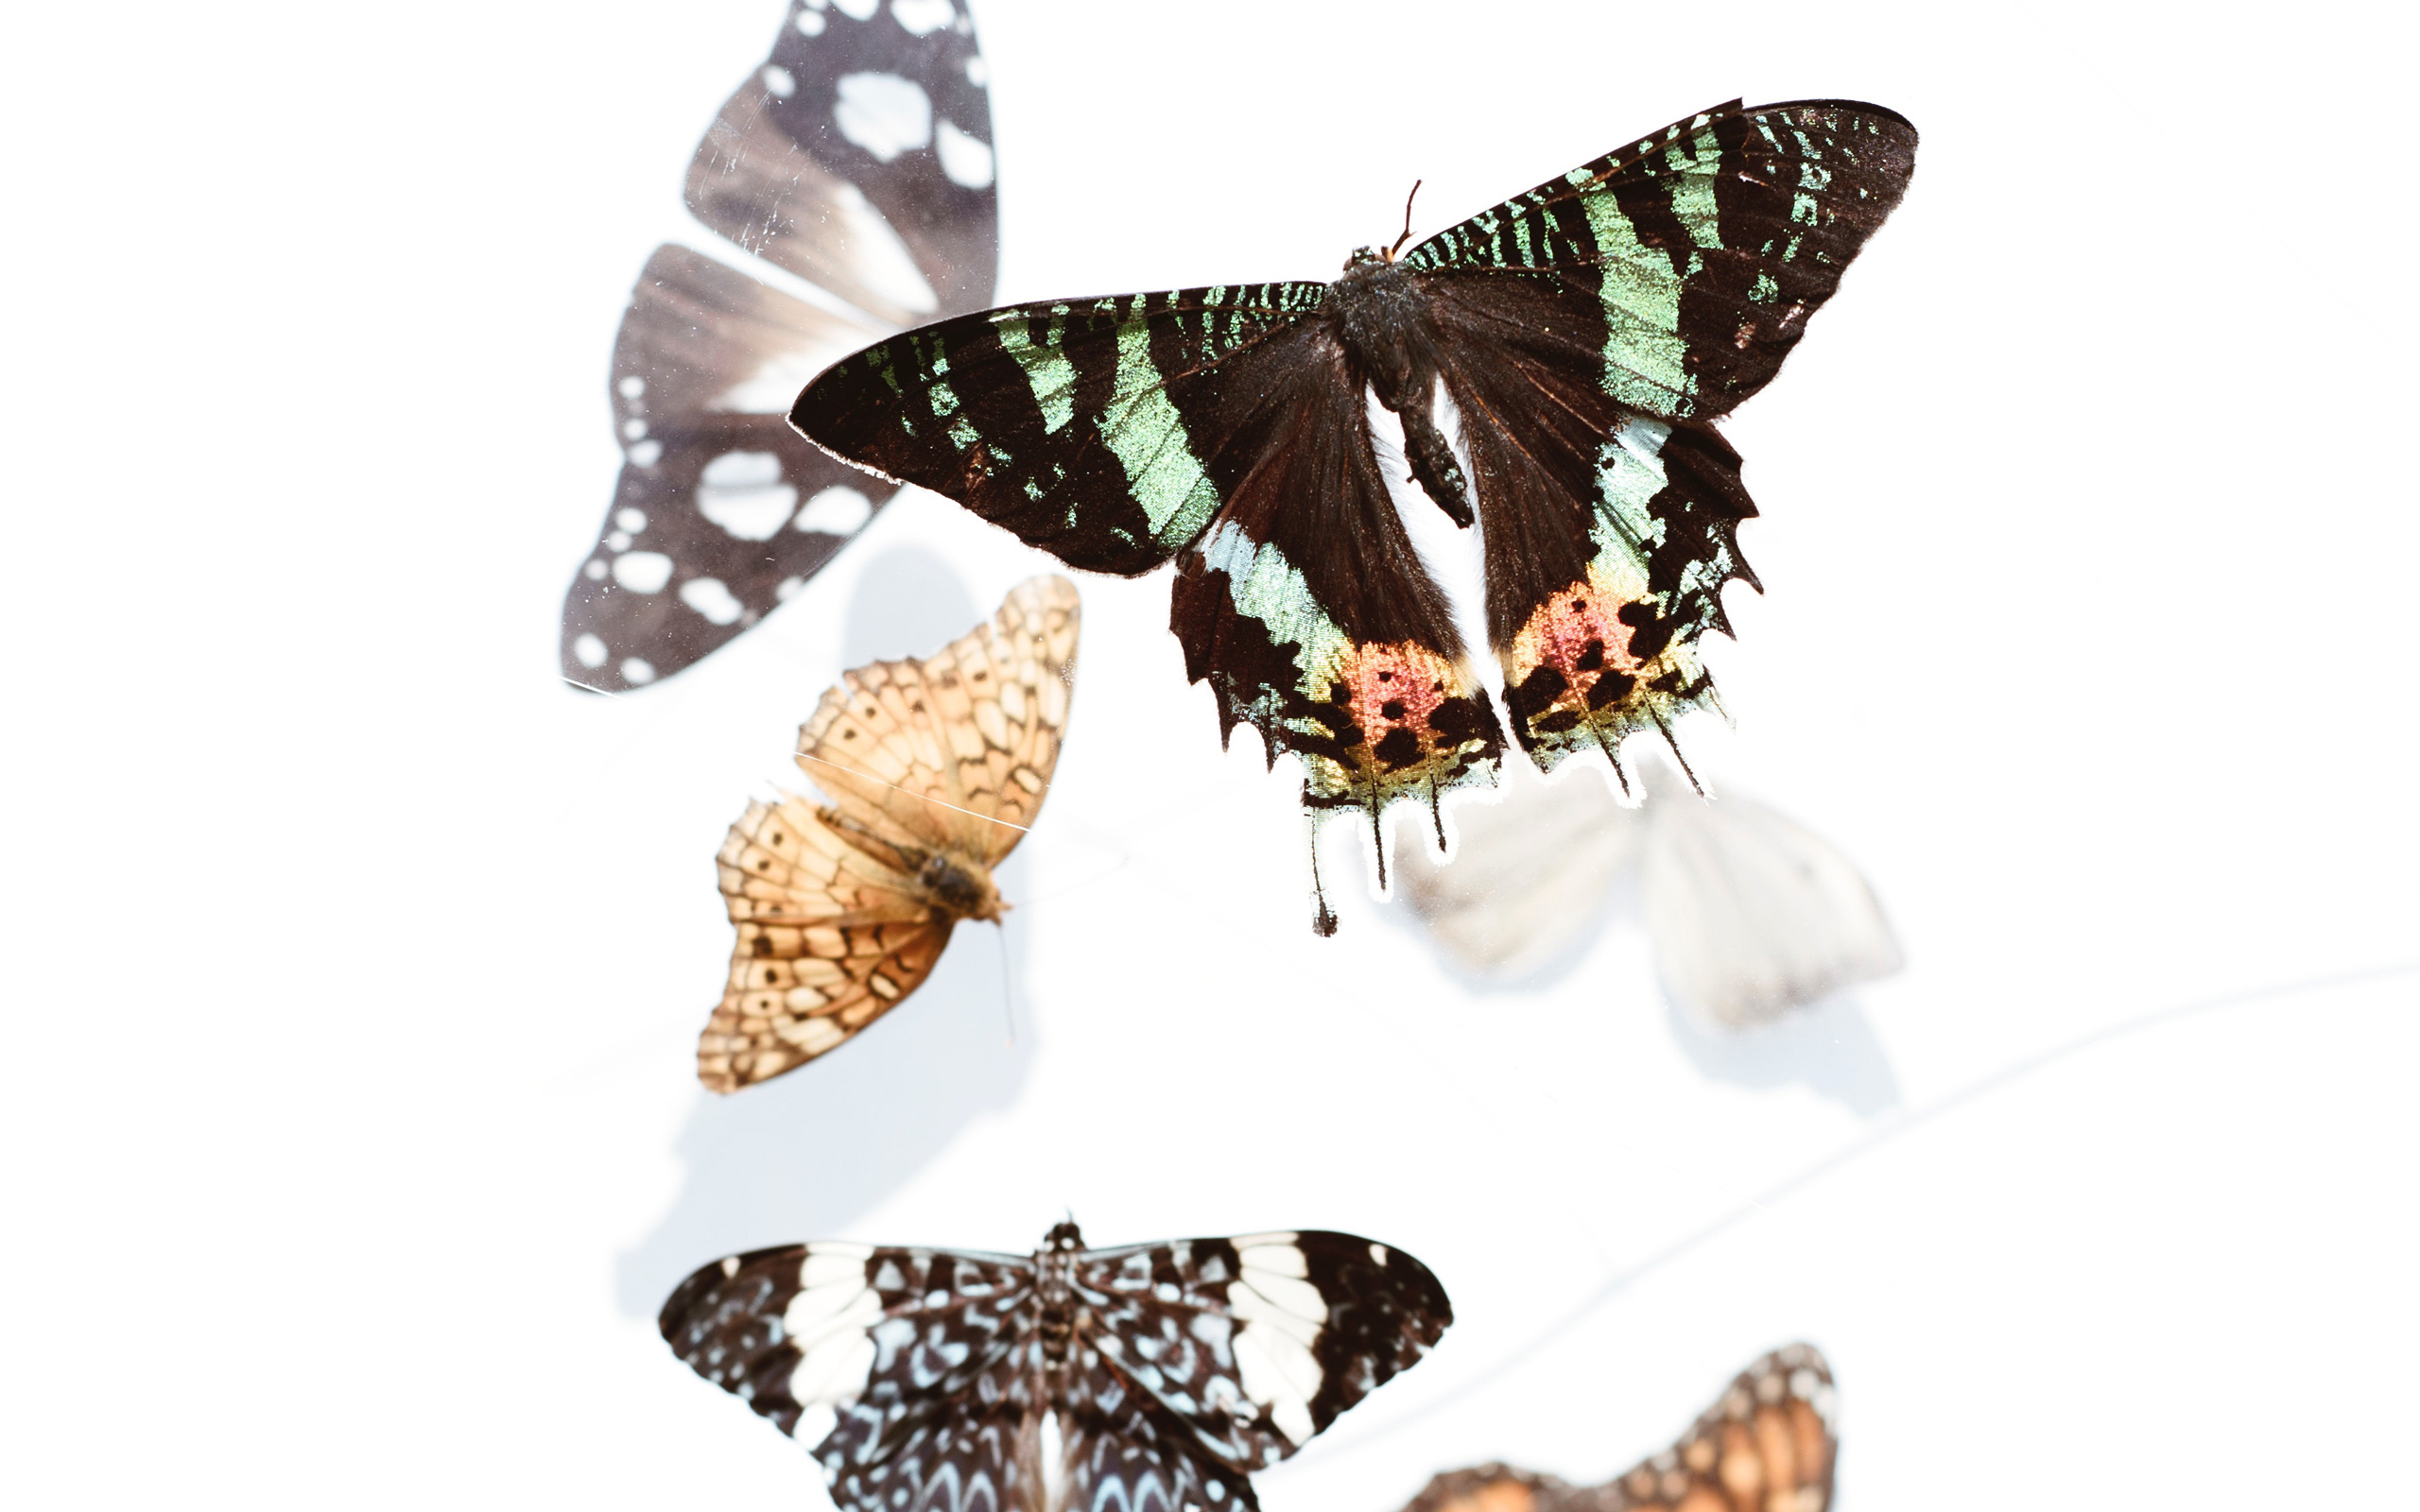 Breeding butterflies: how to create high-impact accelerated growth